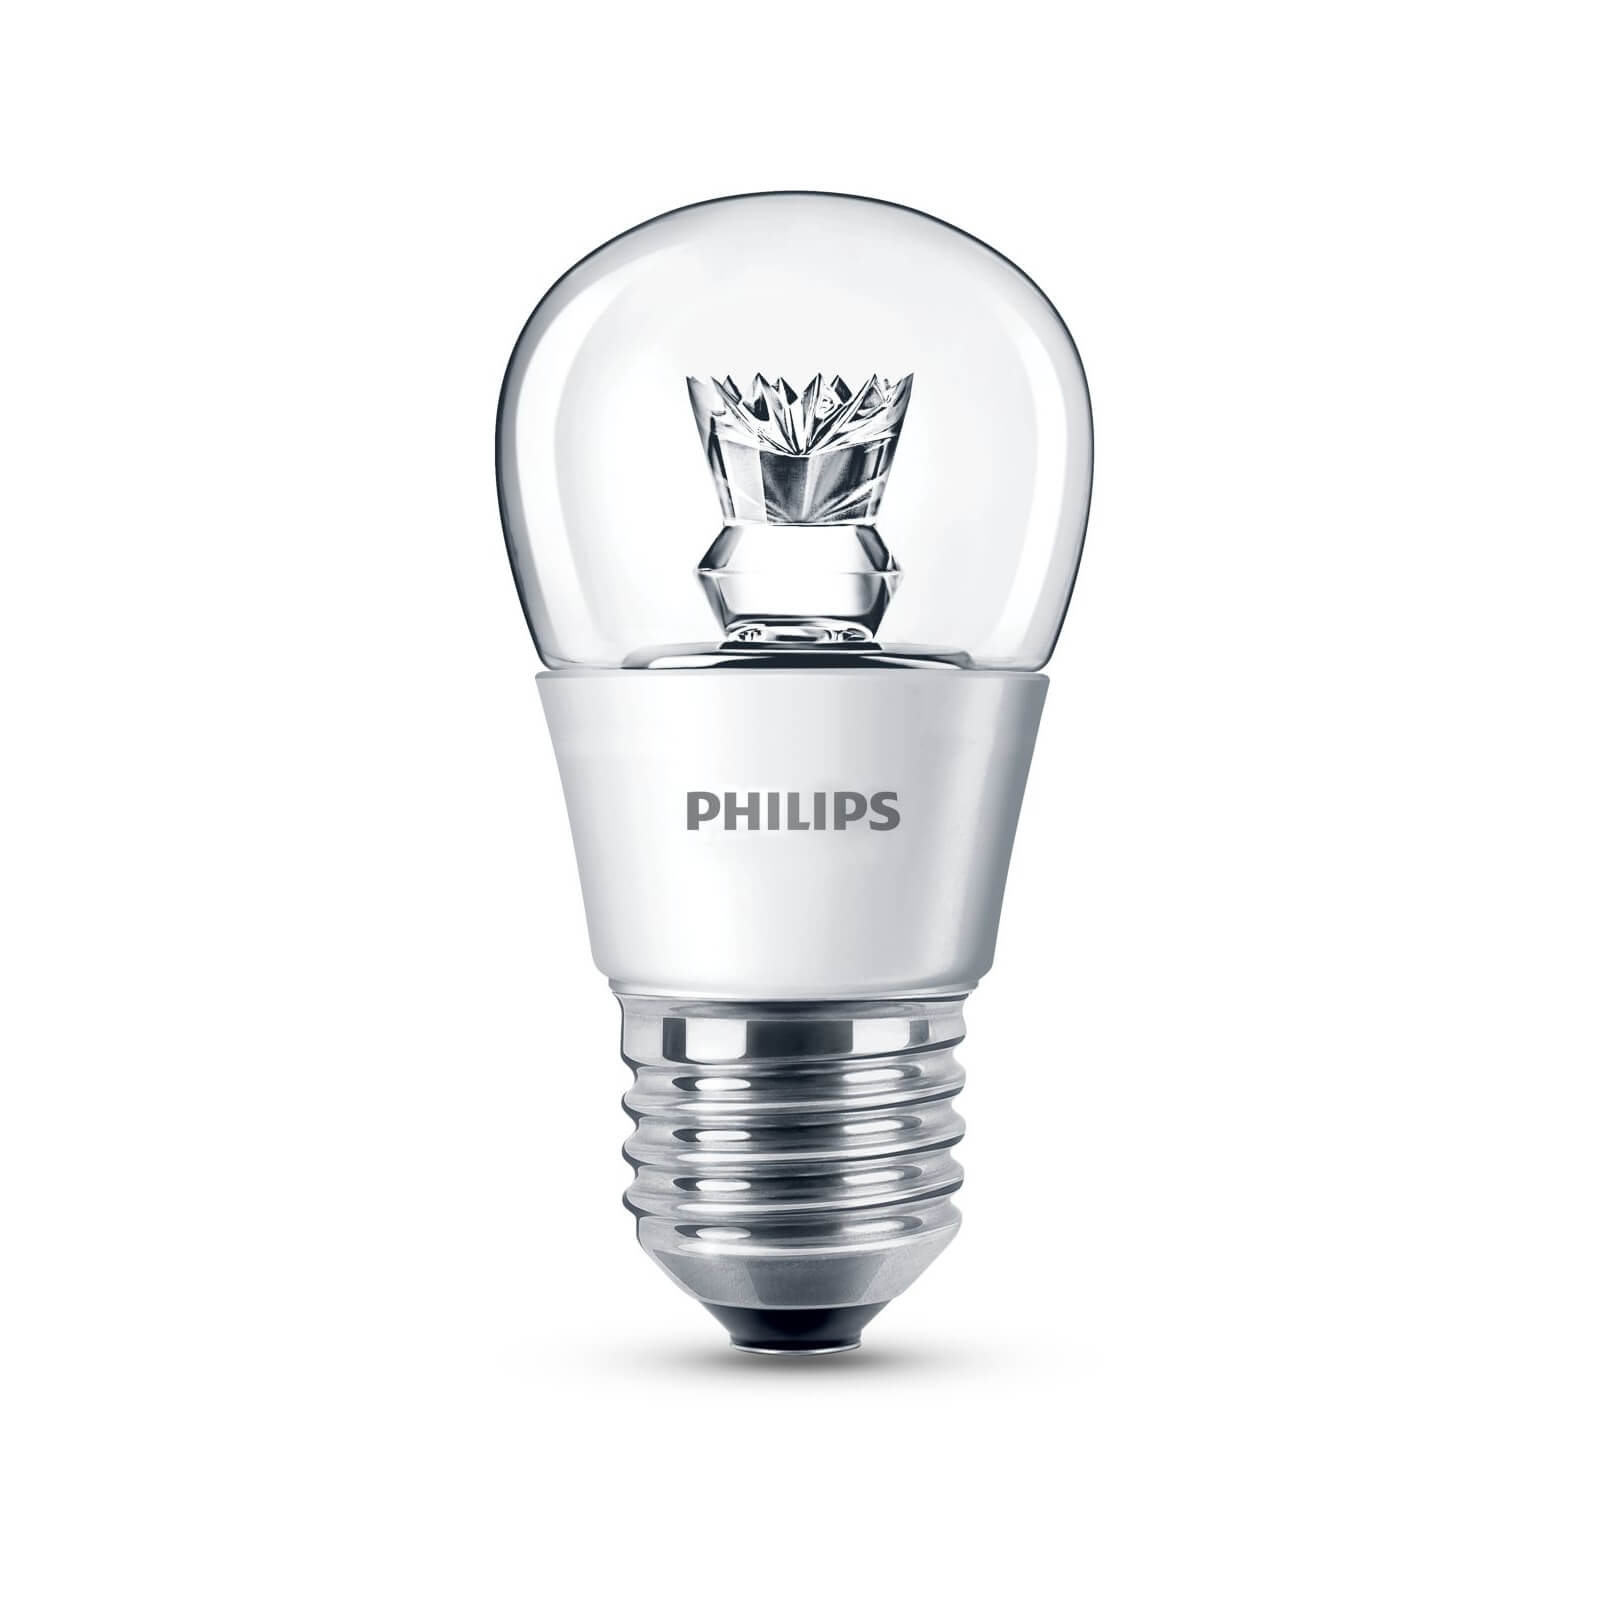 Philips led lampen e27 grote fitting philips led lampen philips led lamp kogel helder 25w e27 parisarafo Image collections